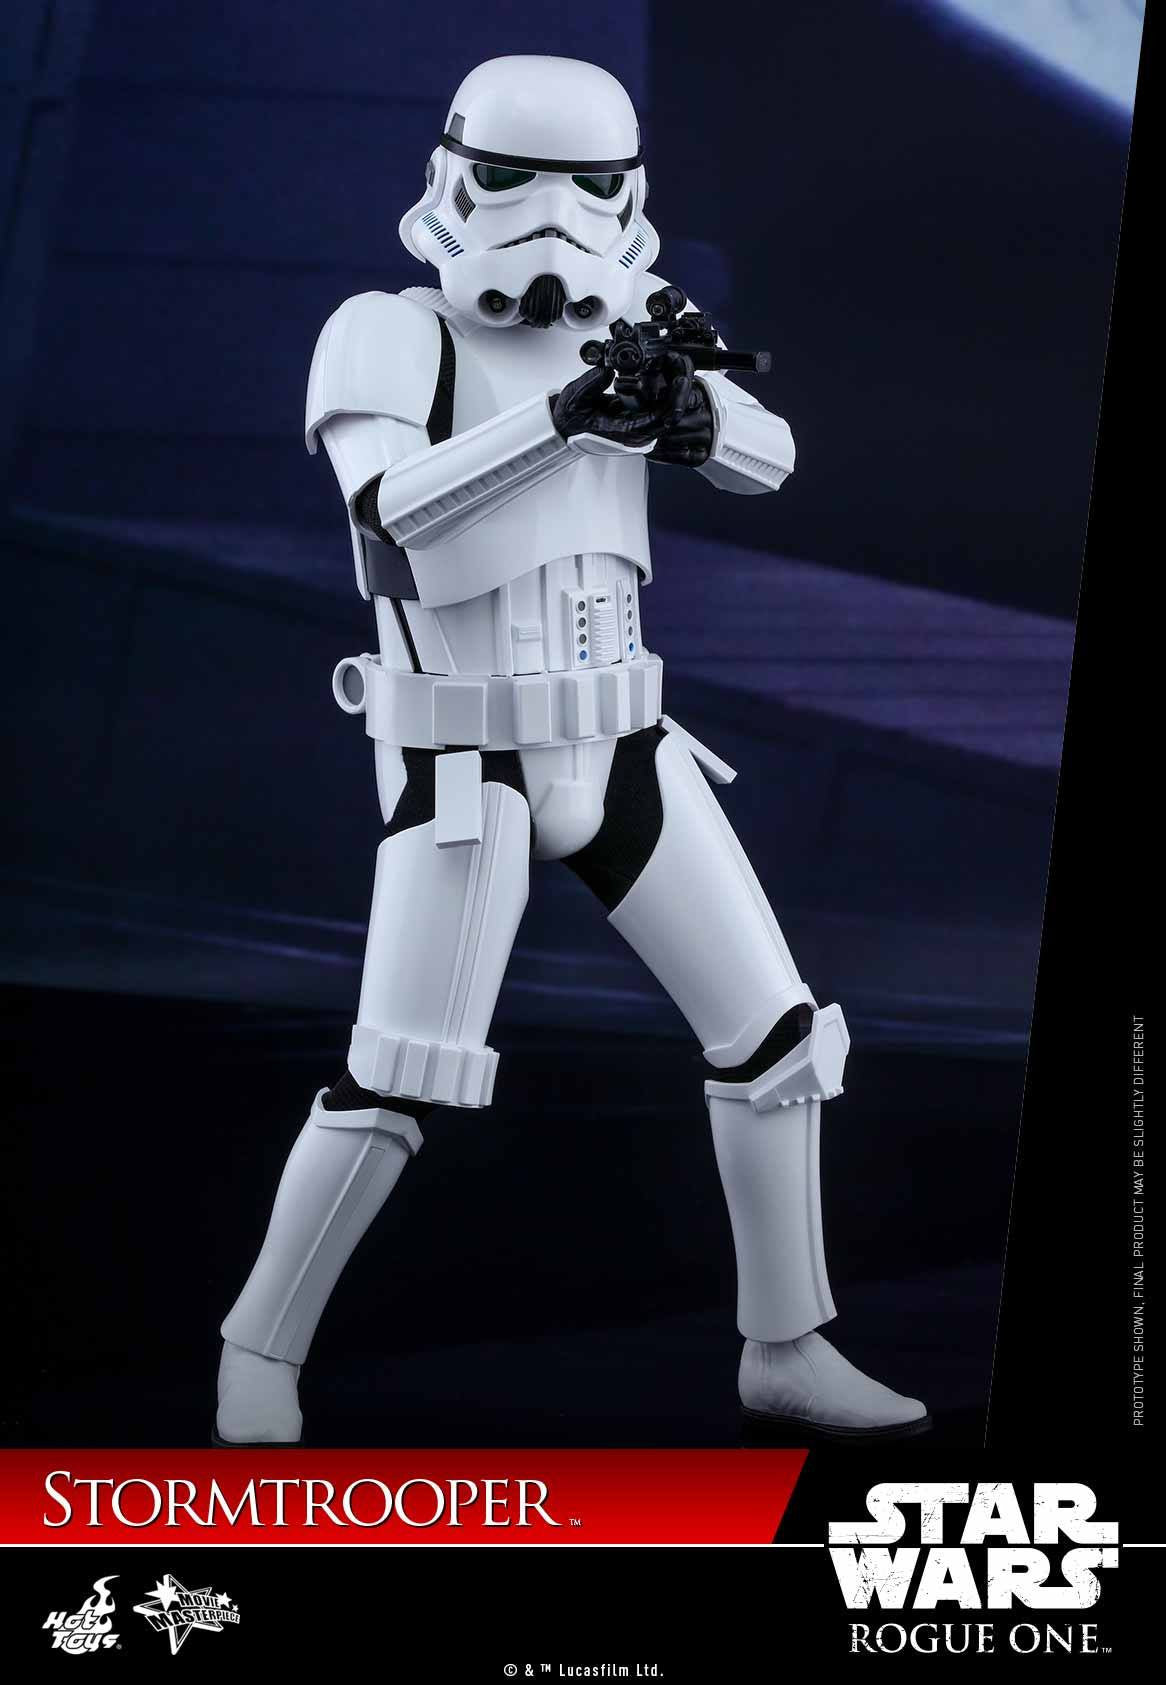 Hot Toys - MMS393 - Rogue One: A Star Wars Story - Stormtrooper - Marvelous Toys - 5